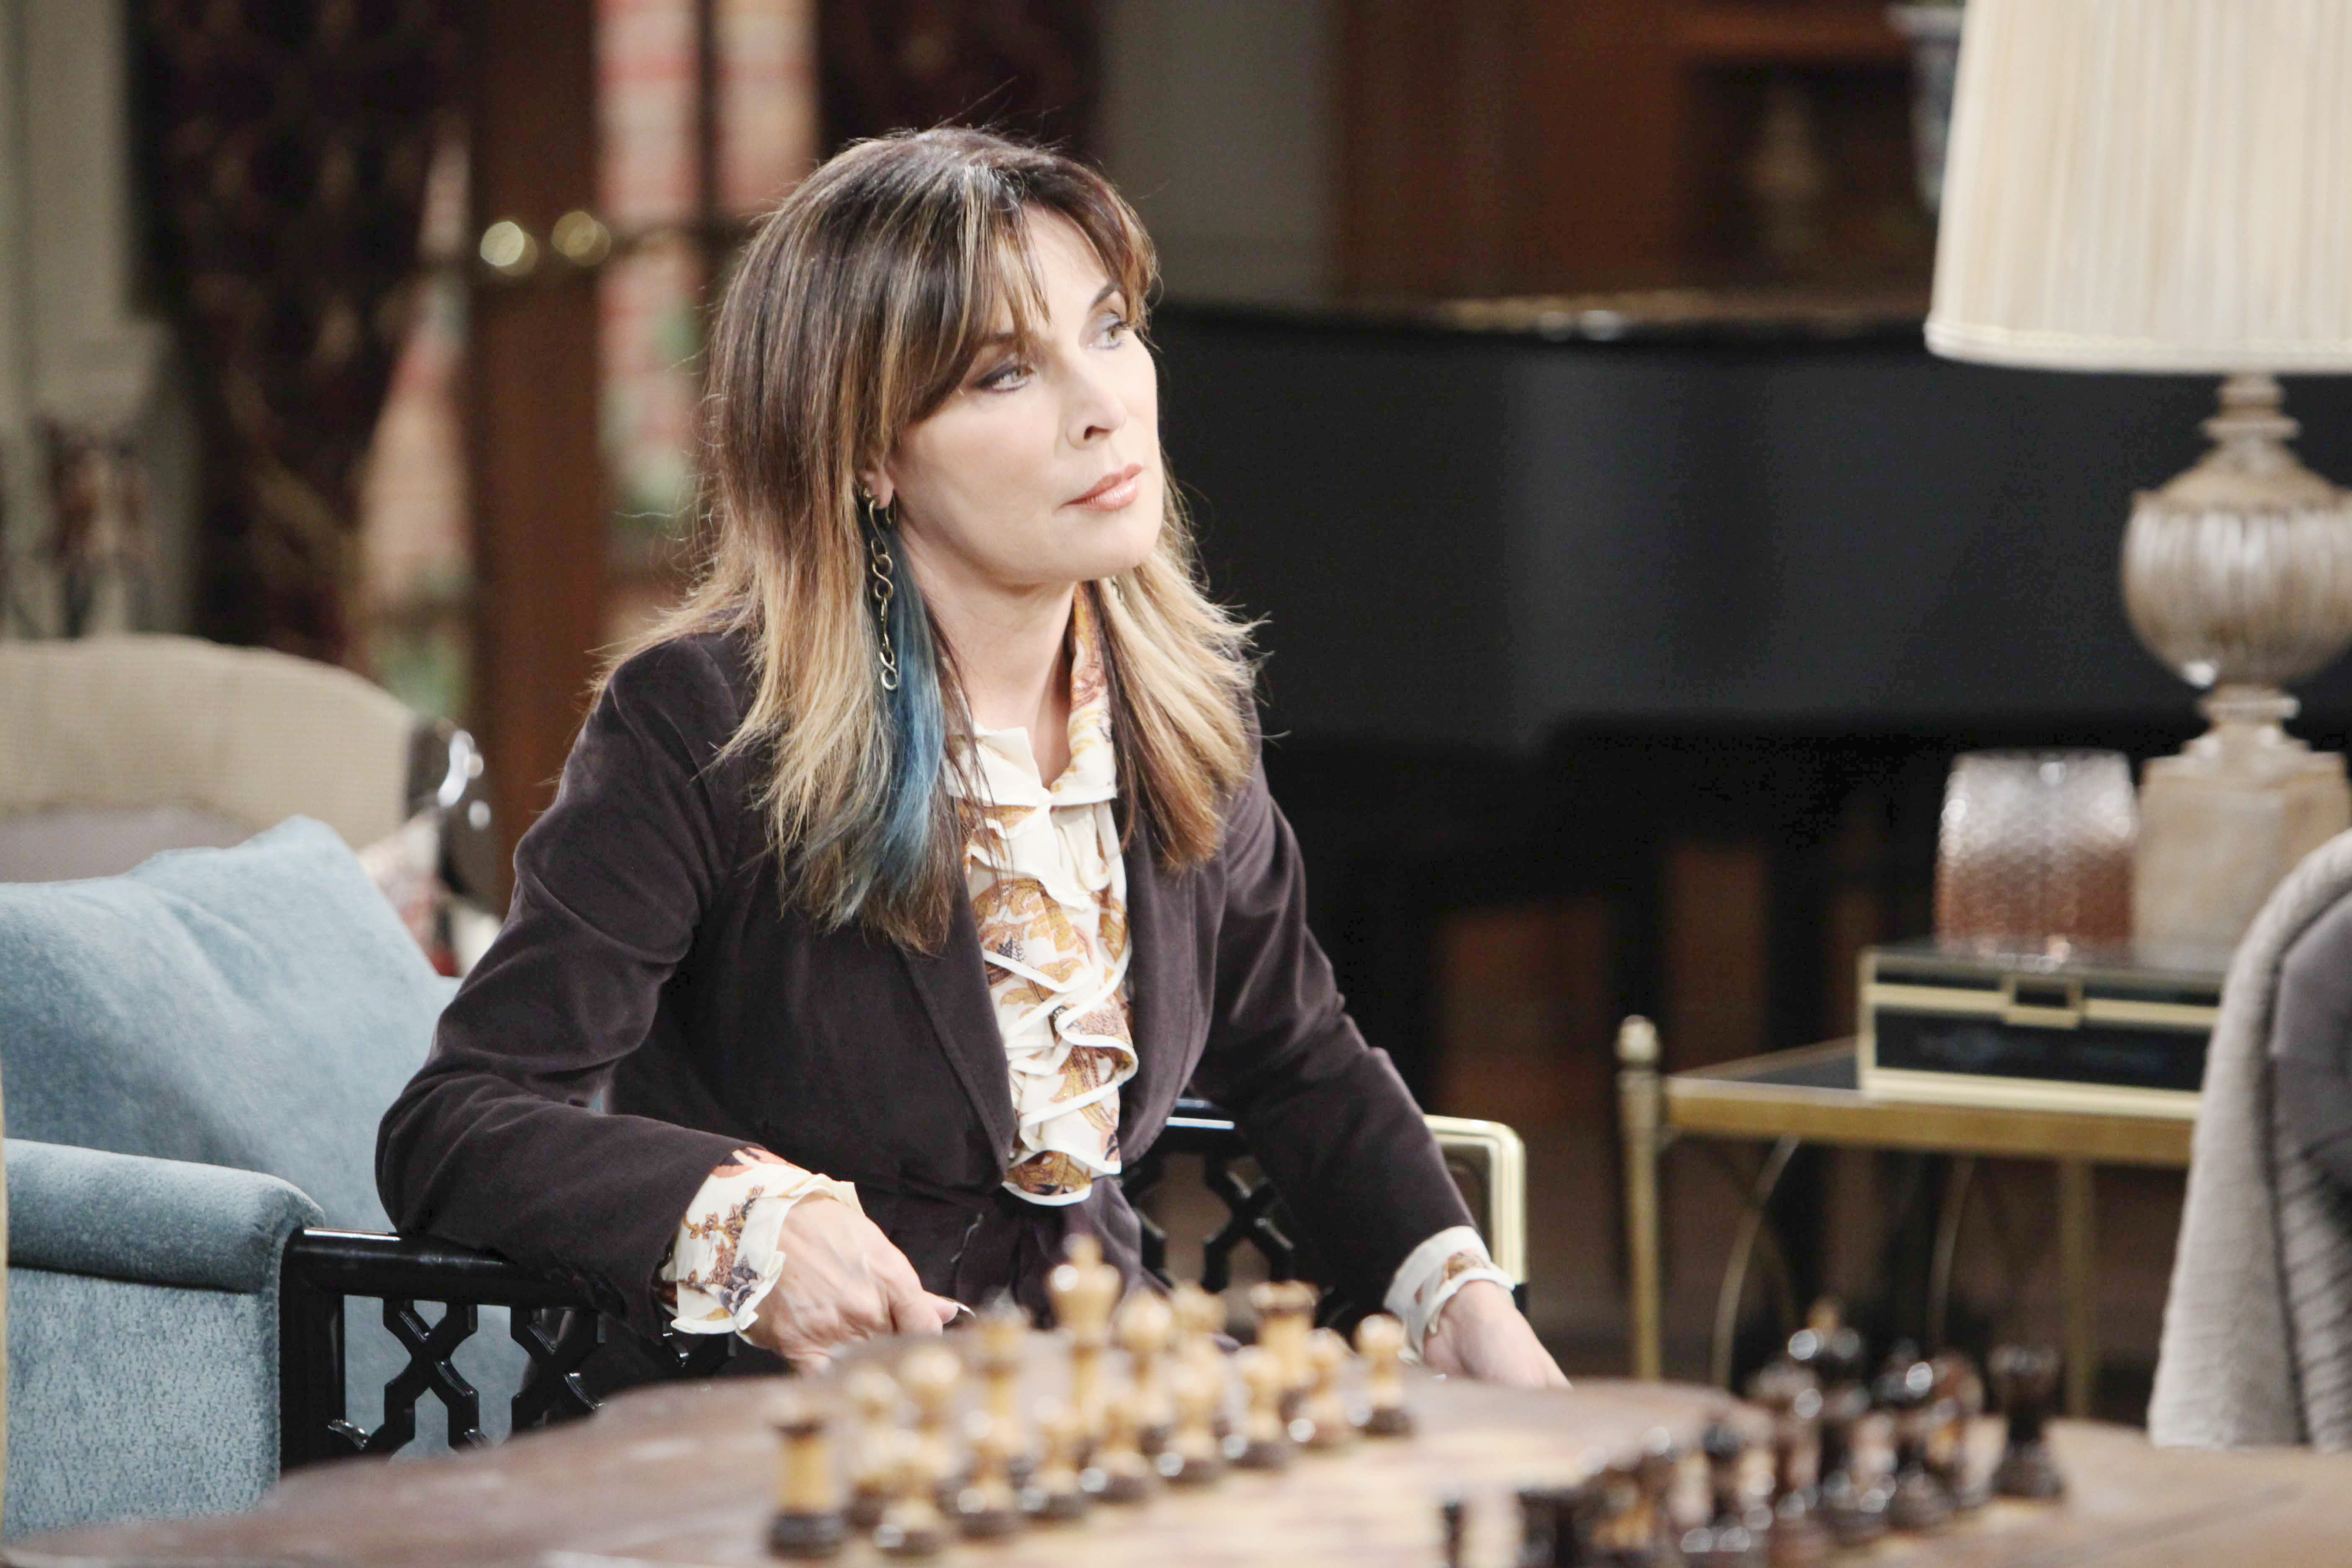 DOOL Spoilers: Kate is intrigued when she overhears a private conversation between Kayla and Steve.